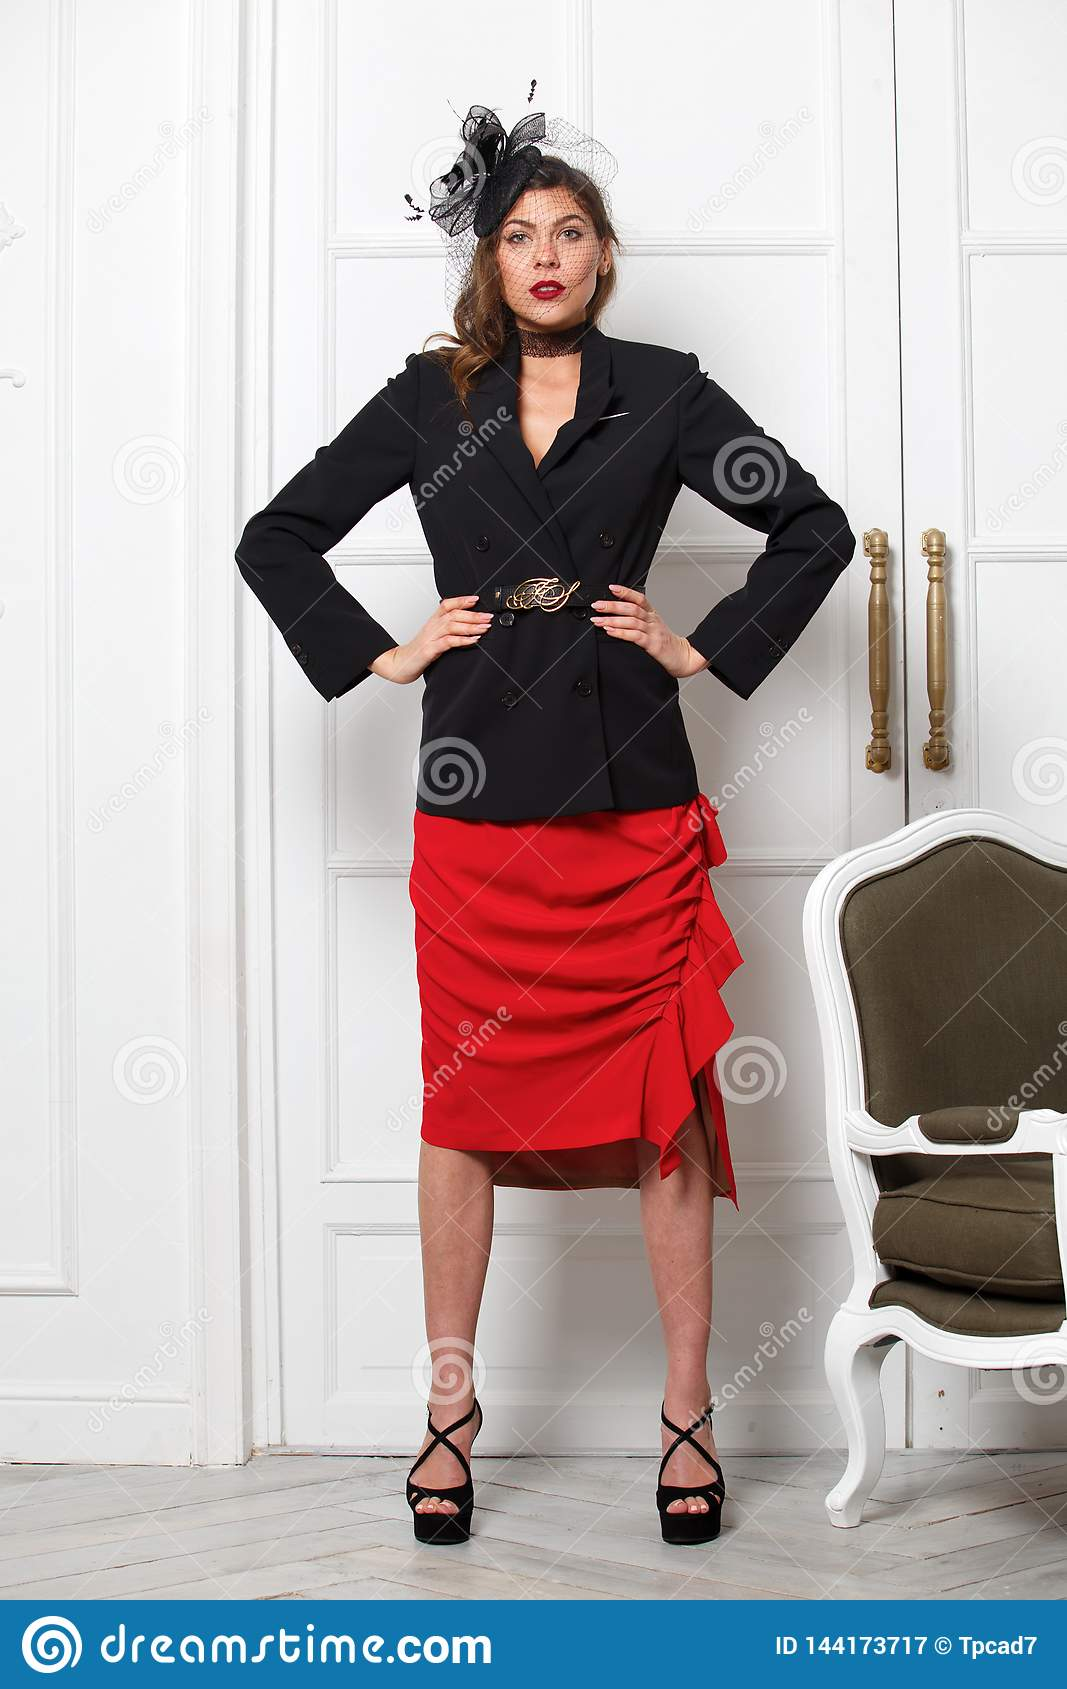 Charming girl dressed in a stylish black jacket, red skirt and a little fashionable hat poses against a white wall in